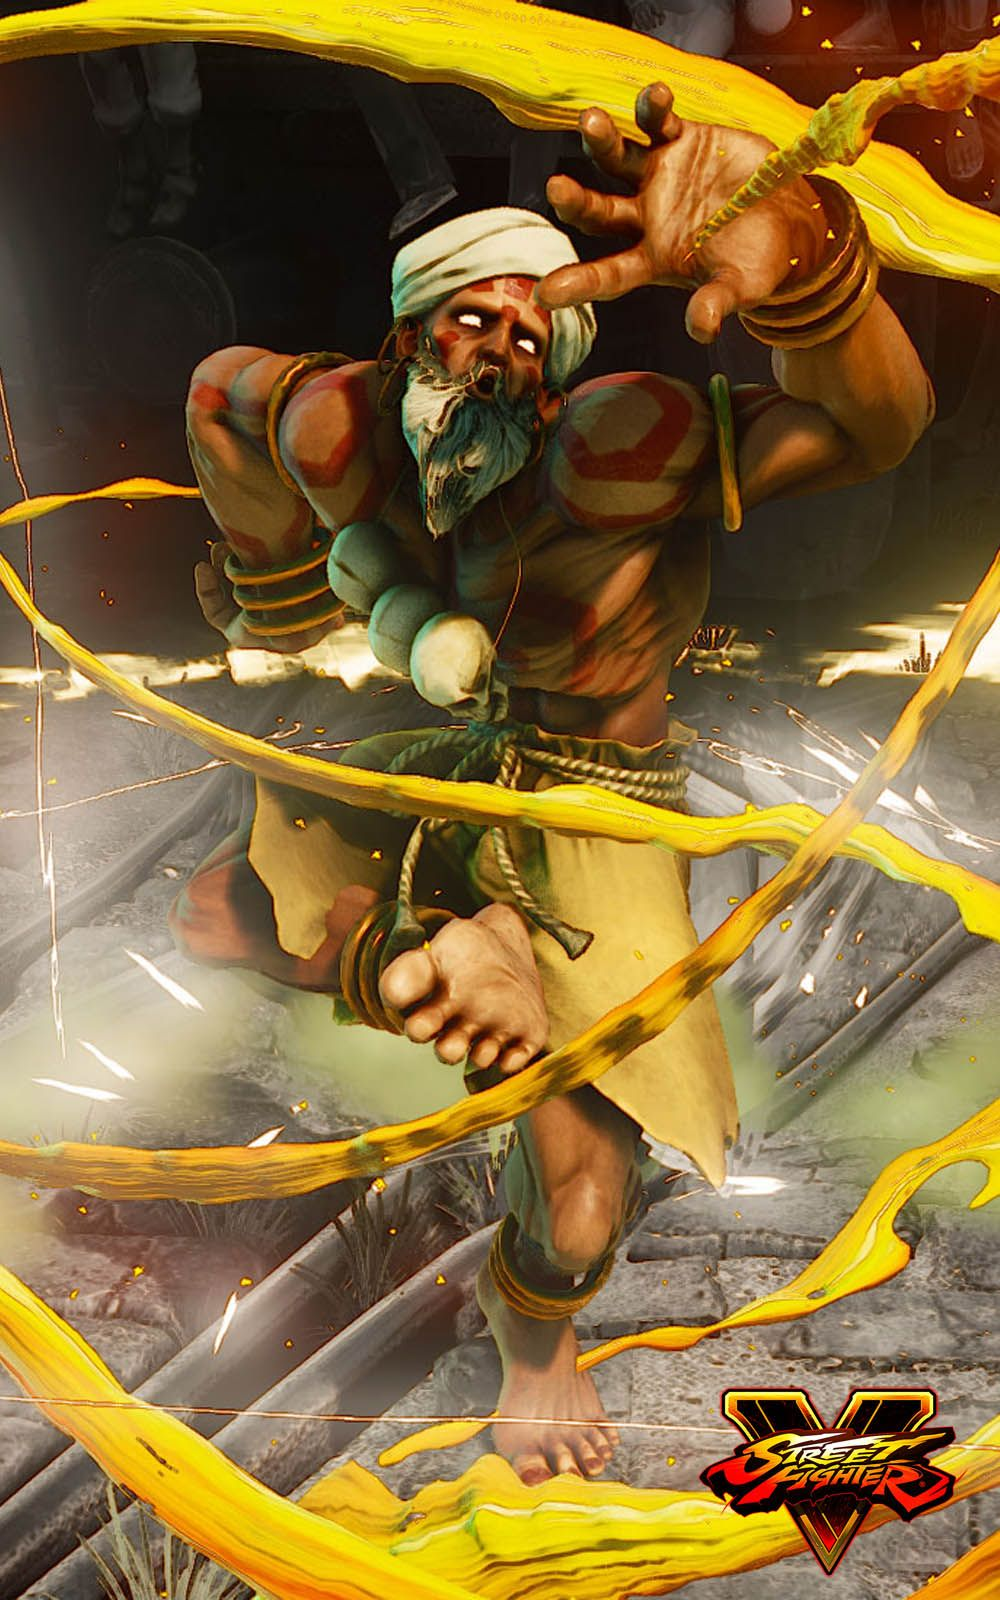 Street Fighter Mobile Wallpapers - Wallpaper Cave